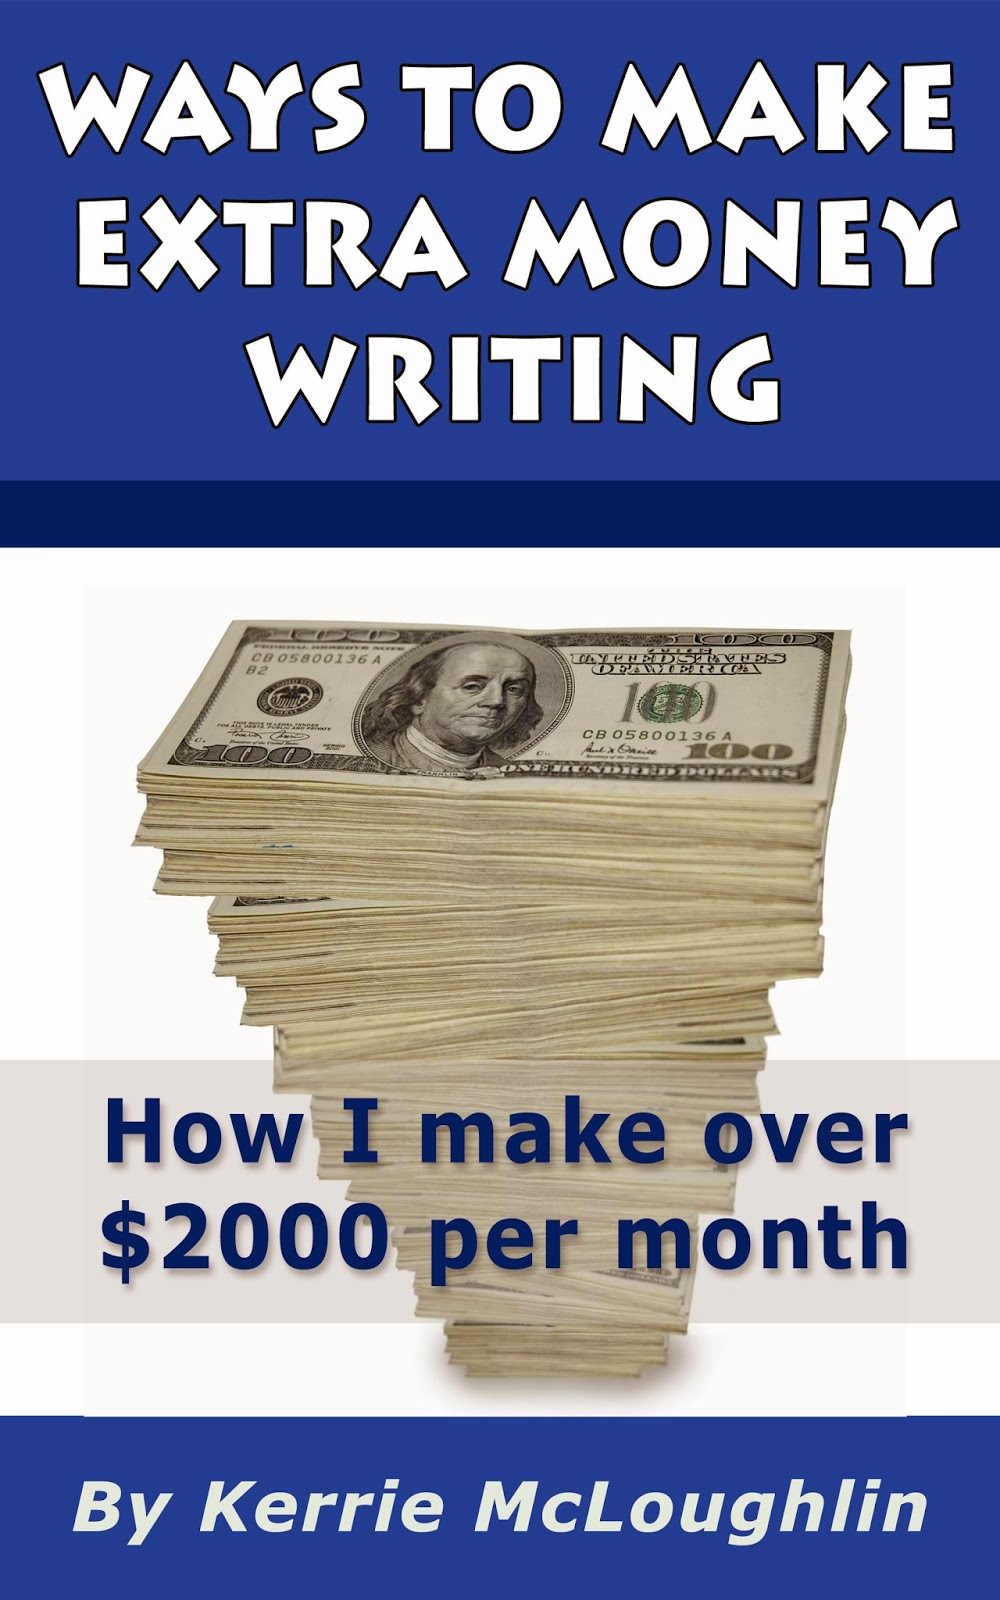 money writing homework help science online all of our essays for are completely original and unique writing essays for money means we have to provide a great value to our customers